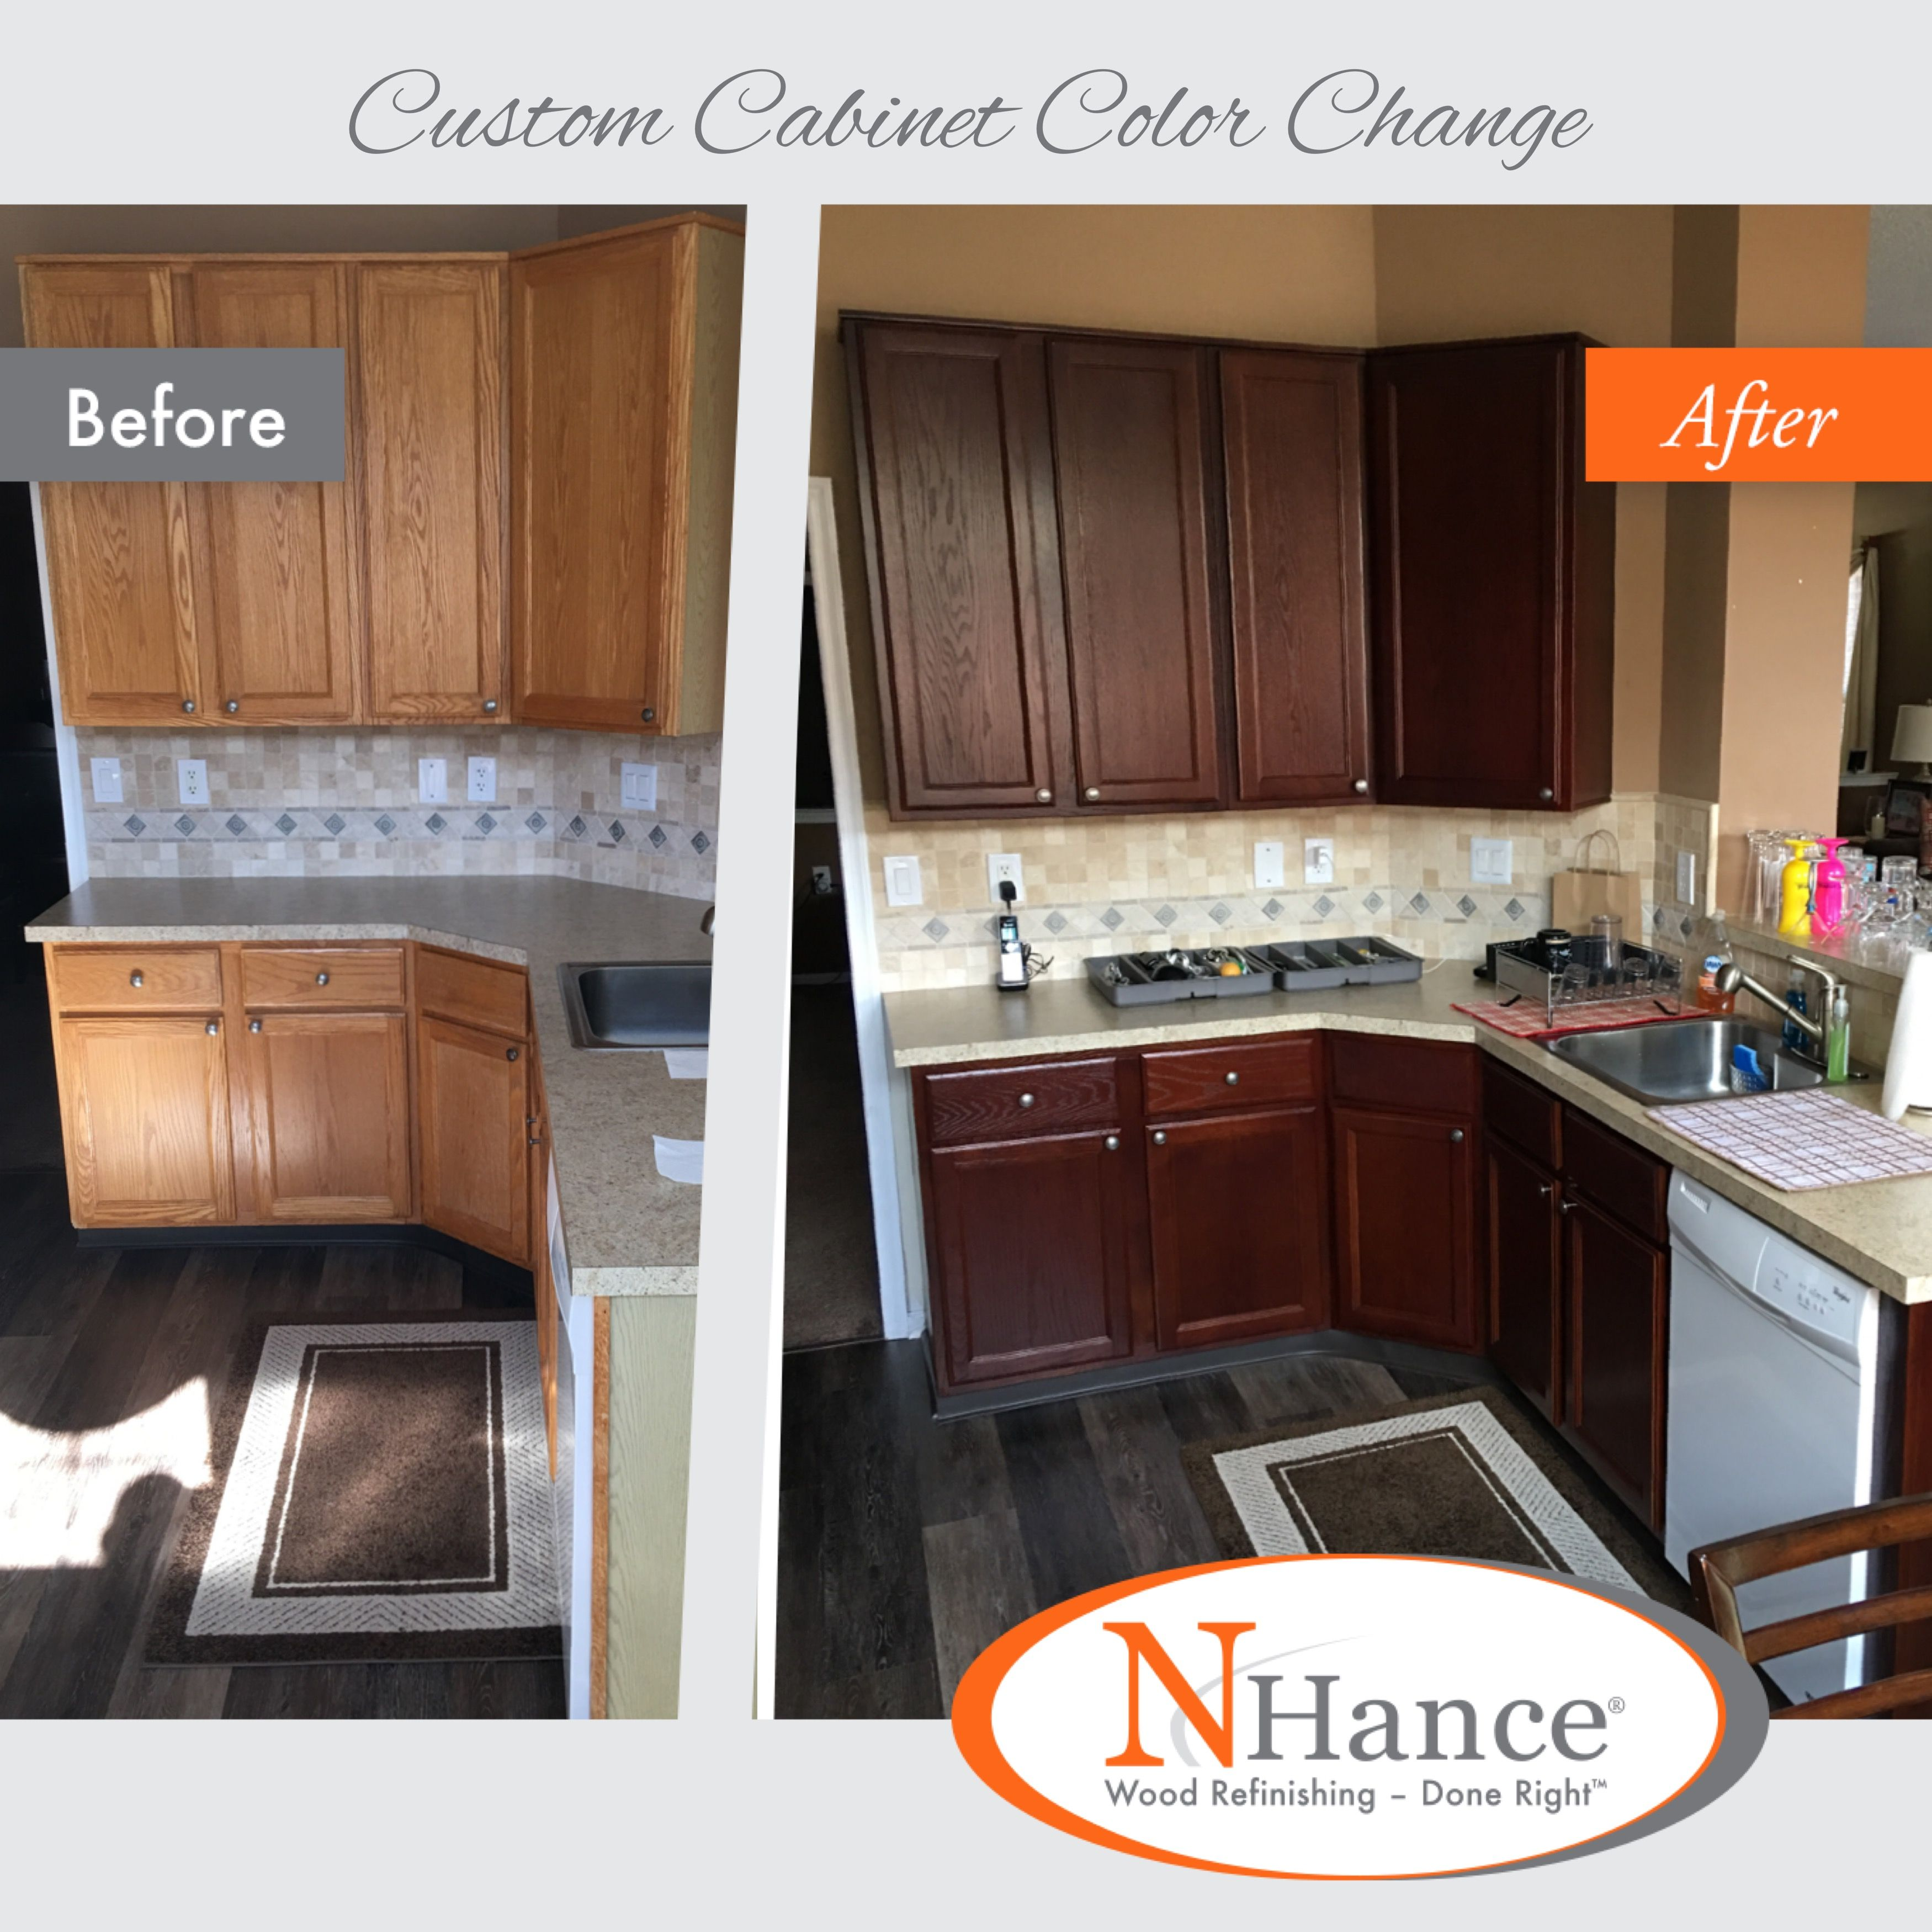 In Addition To Solid Color Options N Hance Offers Transparent Color Options For Our Color Change Serv Cabinet Colors Custom Cabinet Color Refinishing Cabinets